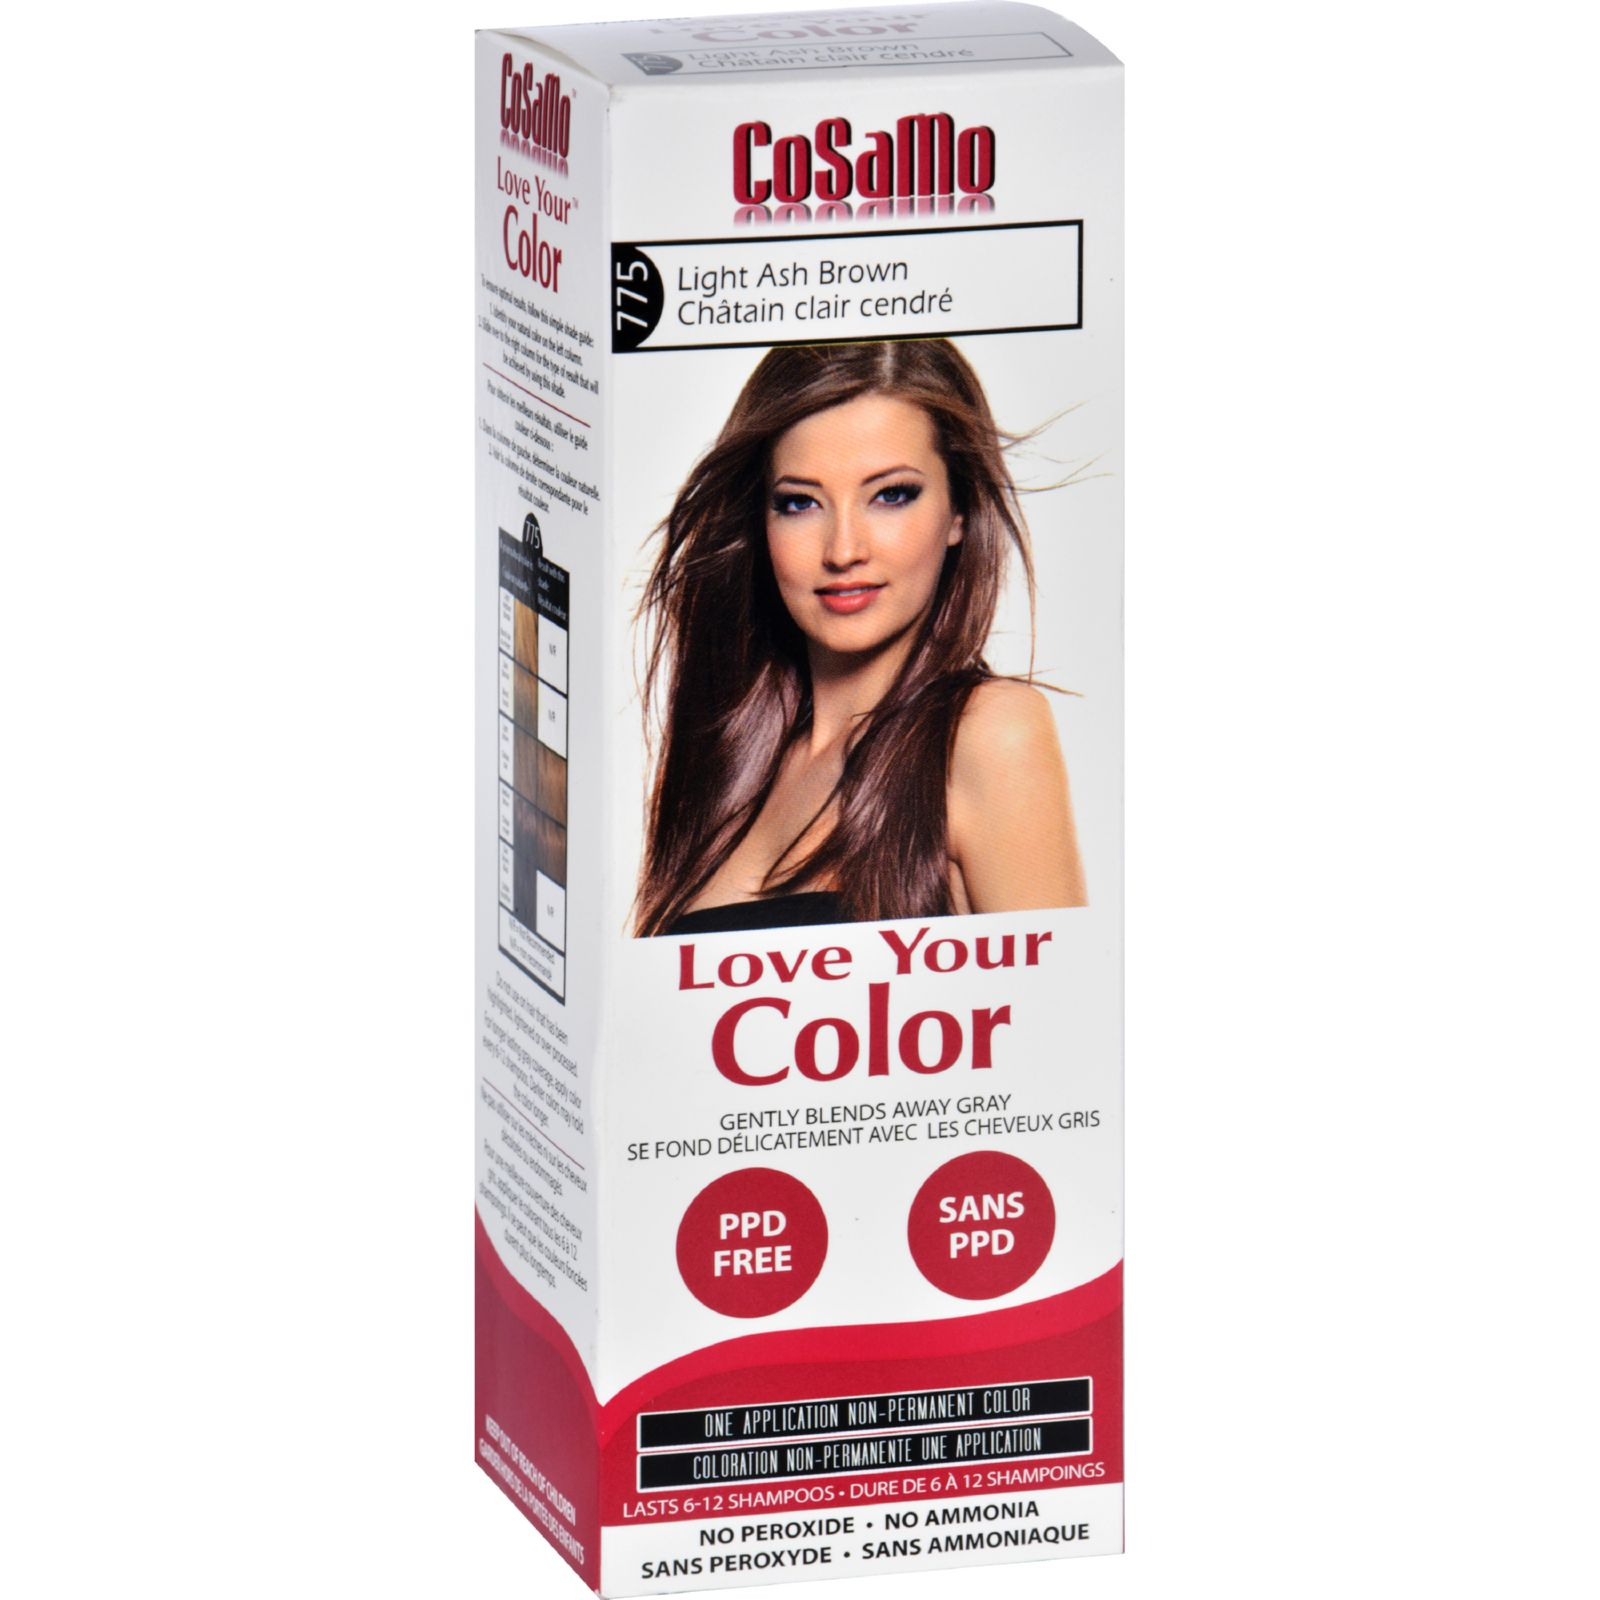 Hair Color - CoSaMo - Non Permanent - Lt Ash Brown - 1 ct